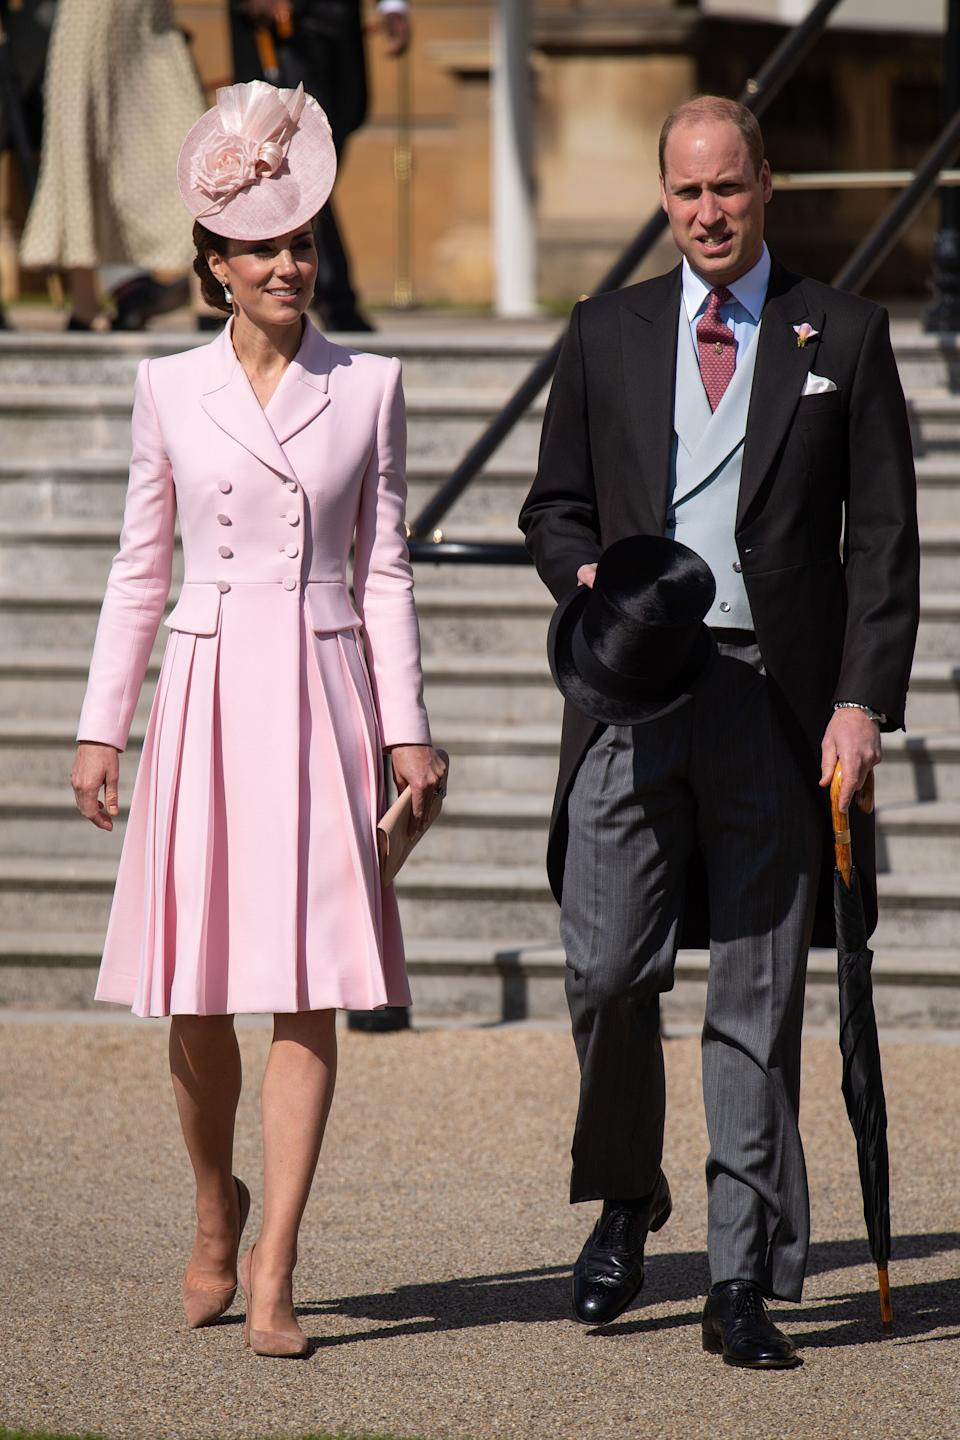 Prince William and Catherine, Duchess of Cambridge attending the Royal Garden Party at Buckingham Palace on May 21 in London, England. (Photo: WPA Pool via Getty Images)